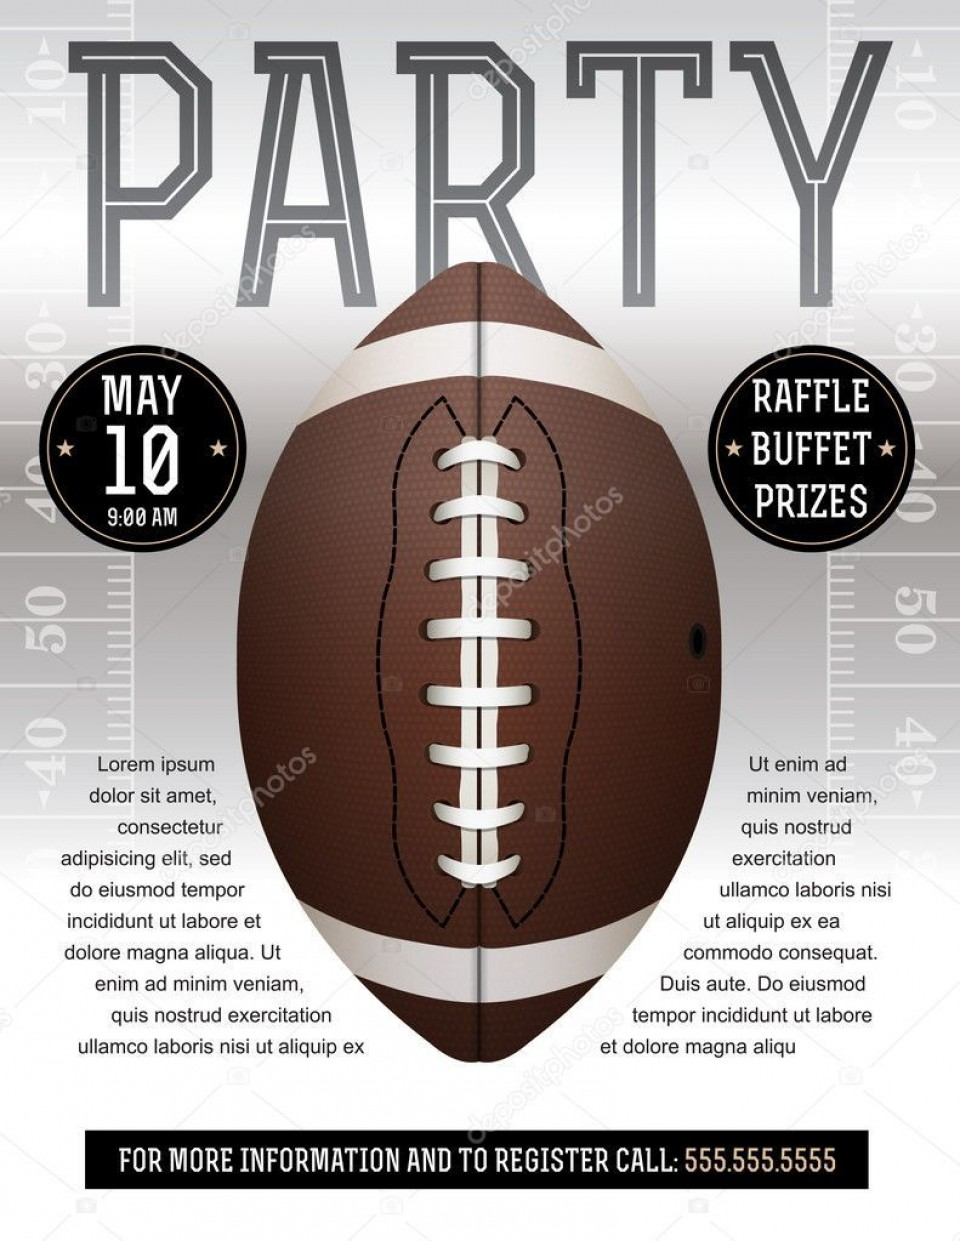 008 Incredible Free Tailgate Party Flyer Template Download Concept 960